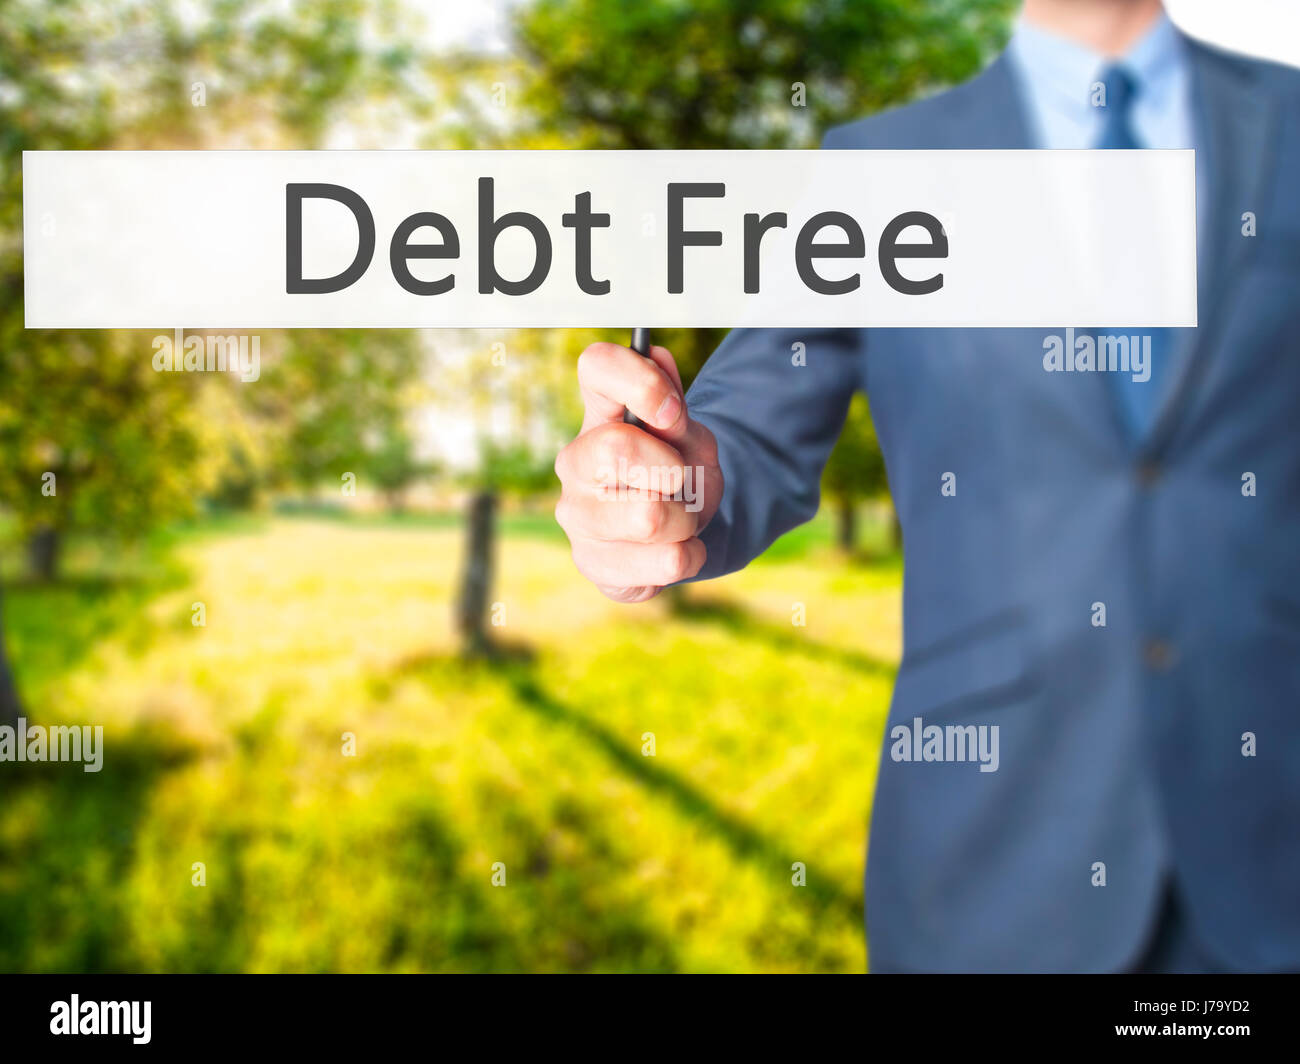 Debt Free - Businessman hand holding sign. Business, technology, internet concept. Stock Photo - Stock Image